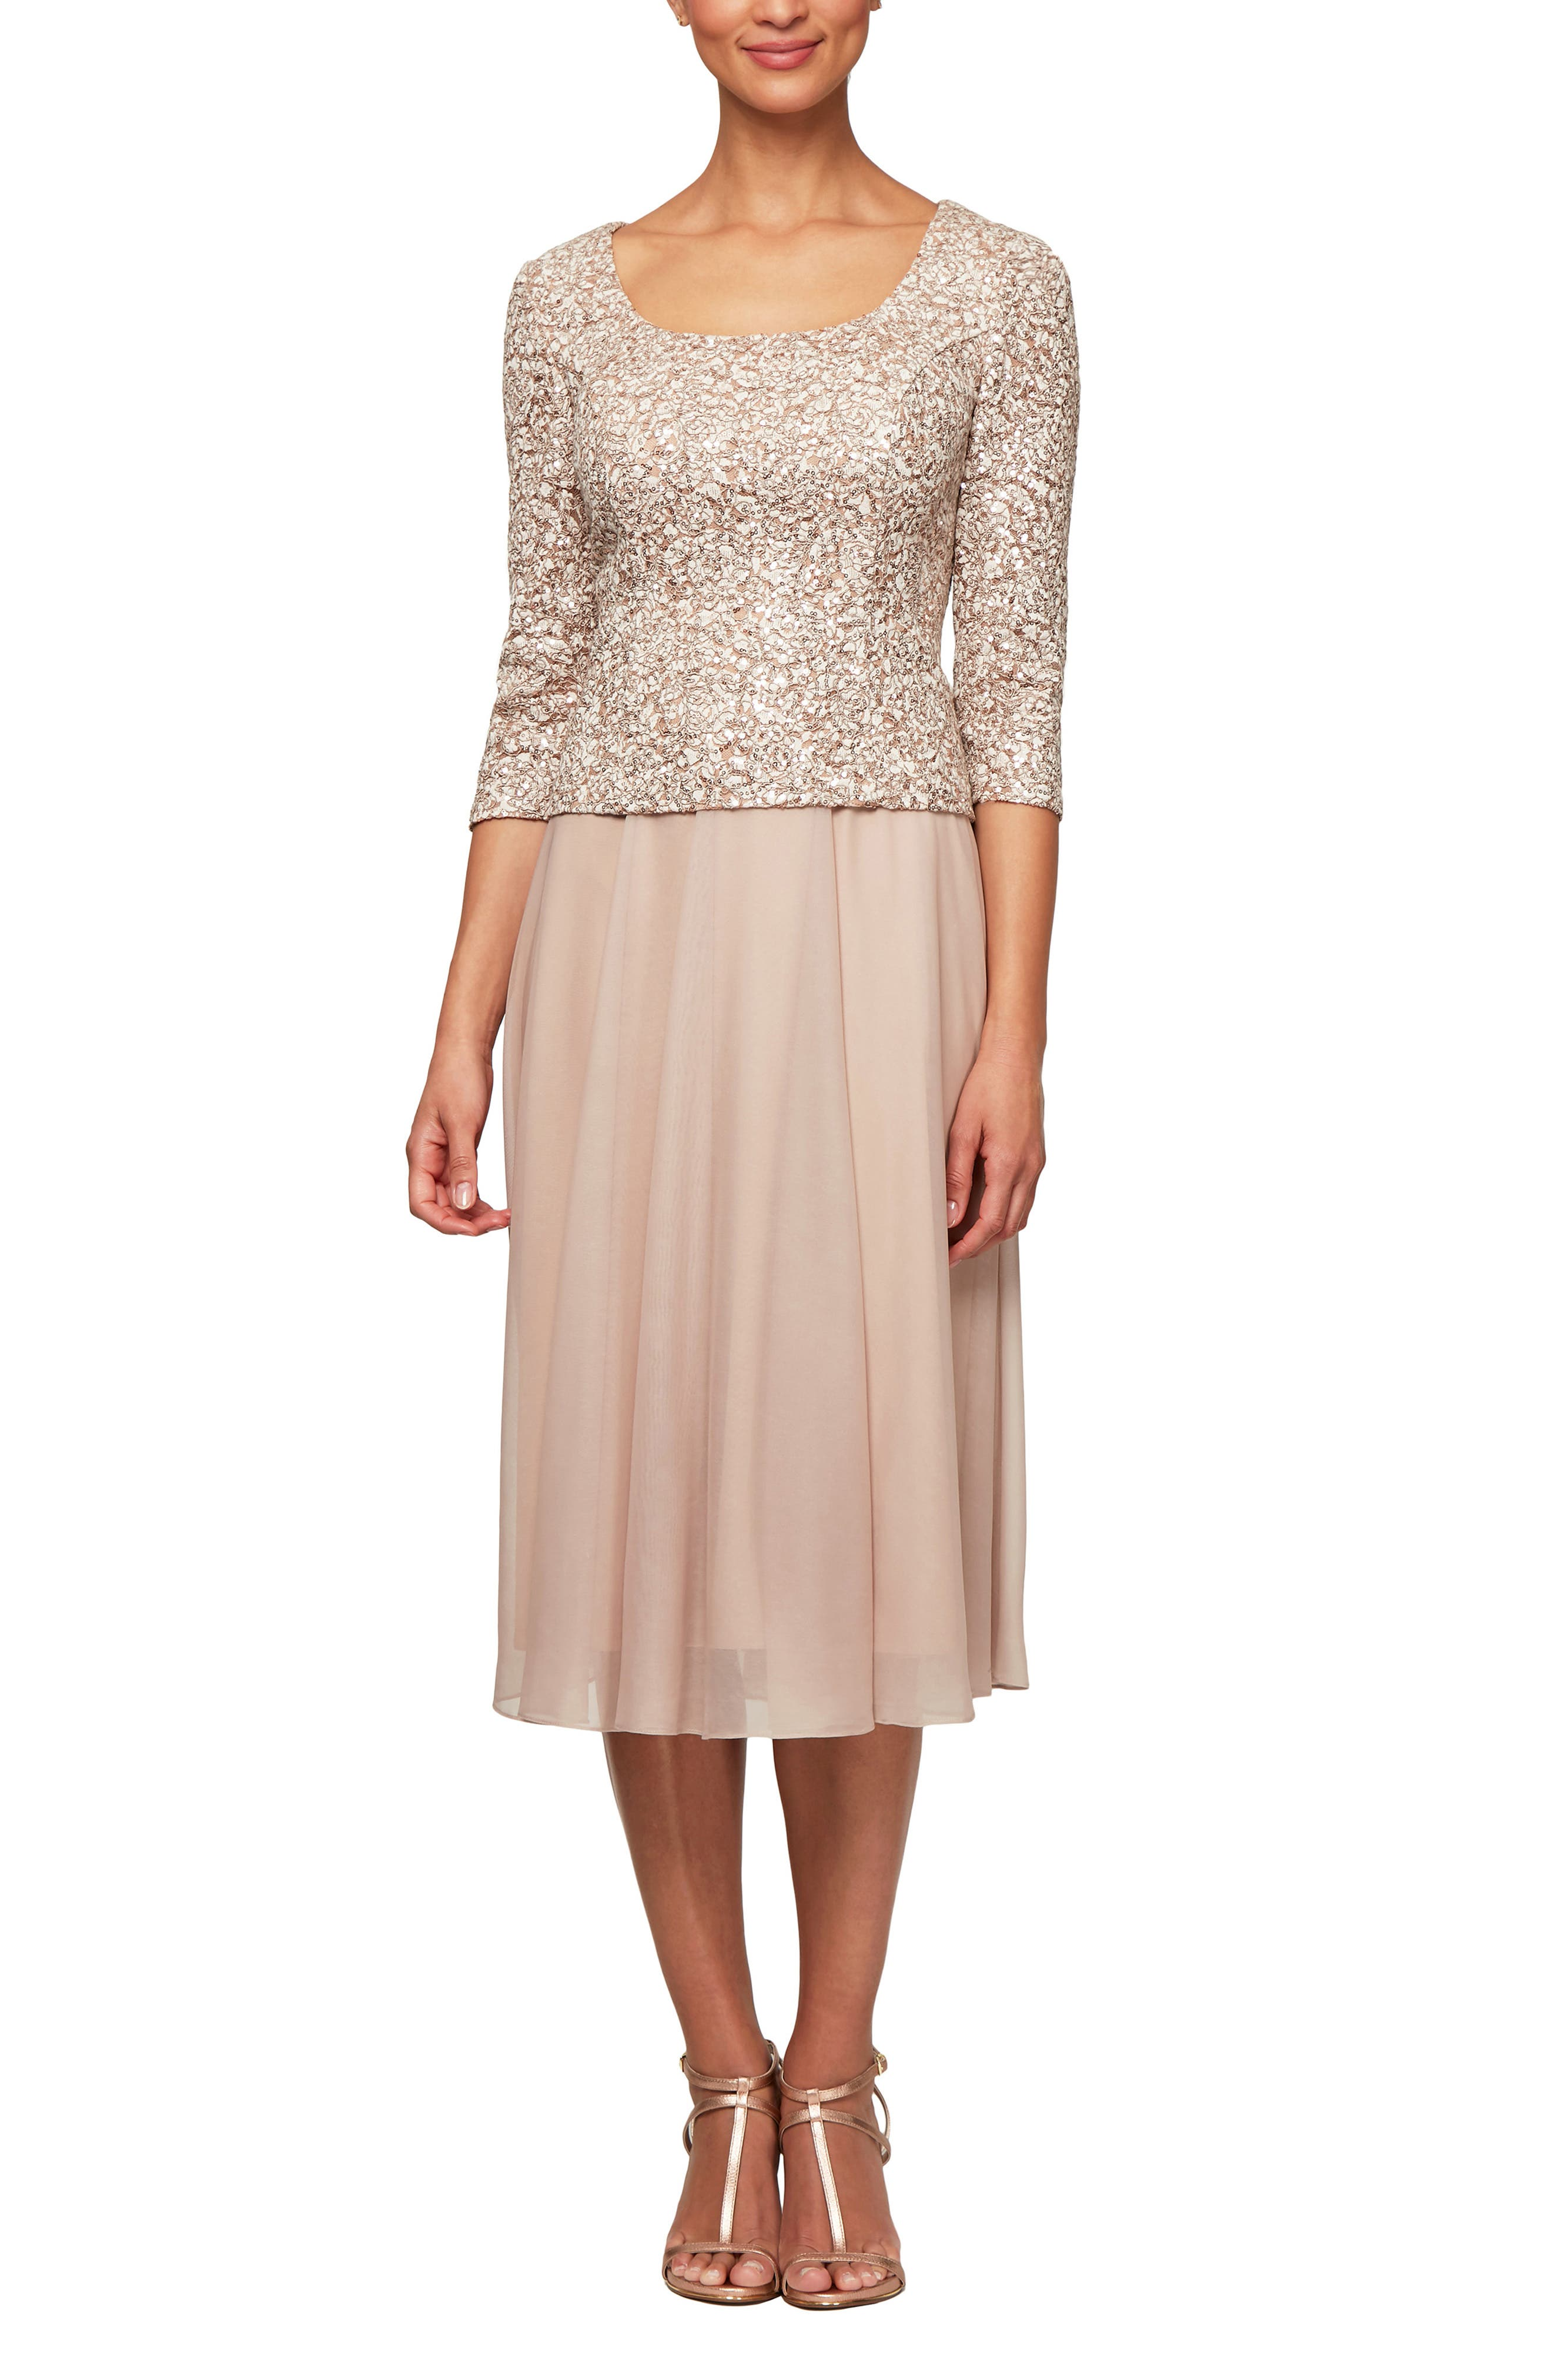 Alex Evenings Sequin Bodice Tea Length Dress, Ivory